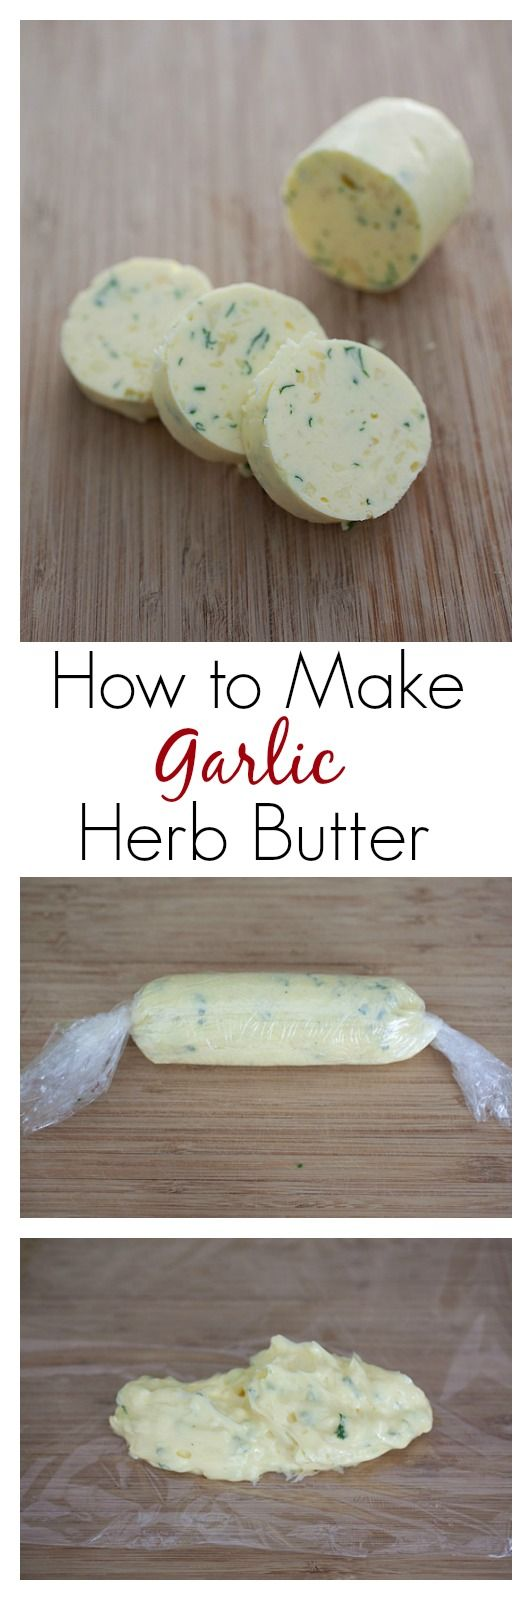 How to make Garlic Herb Butter